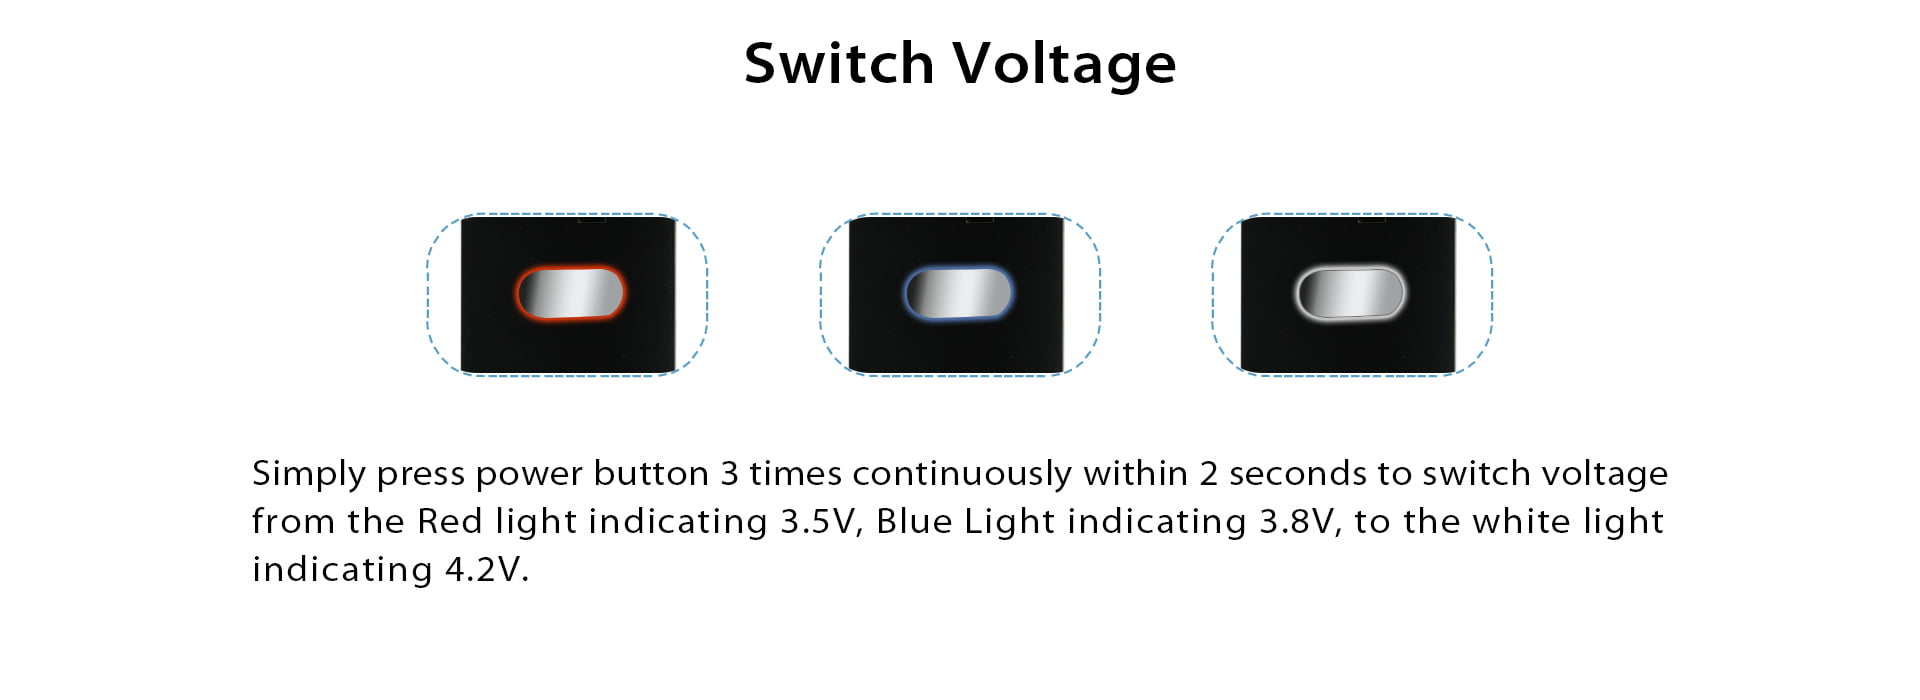 Canva Switch Voltage